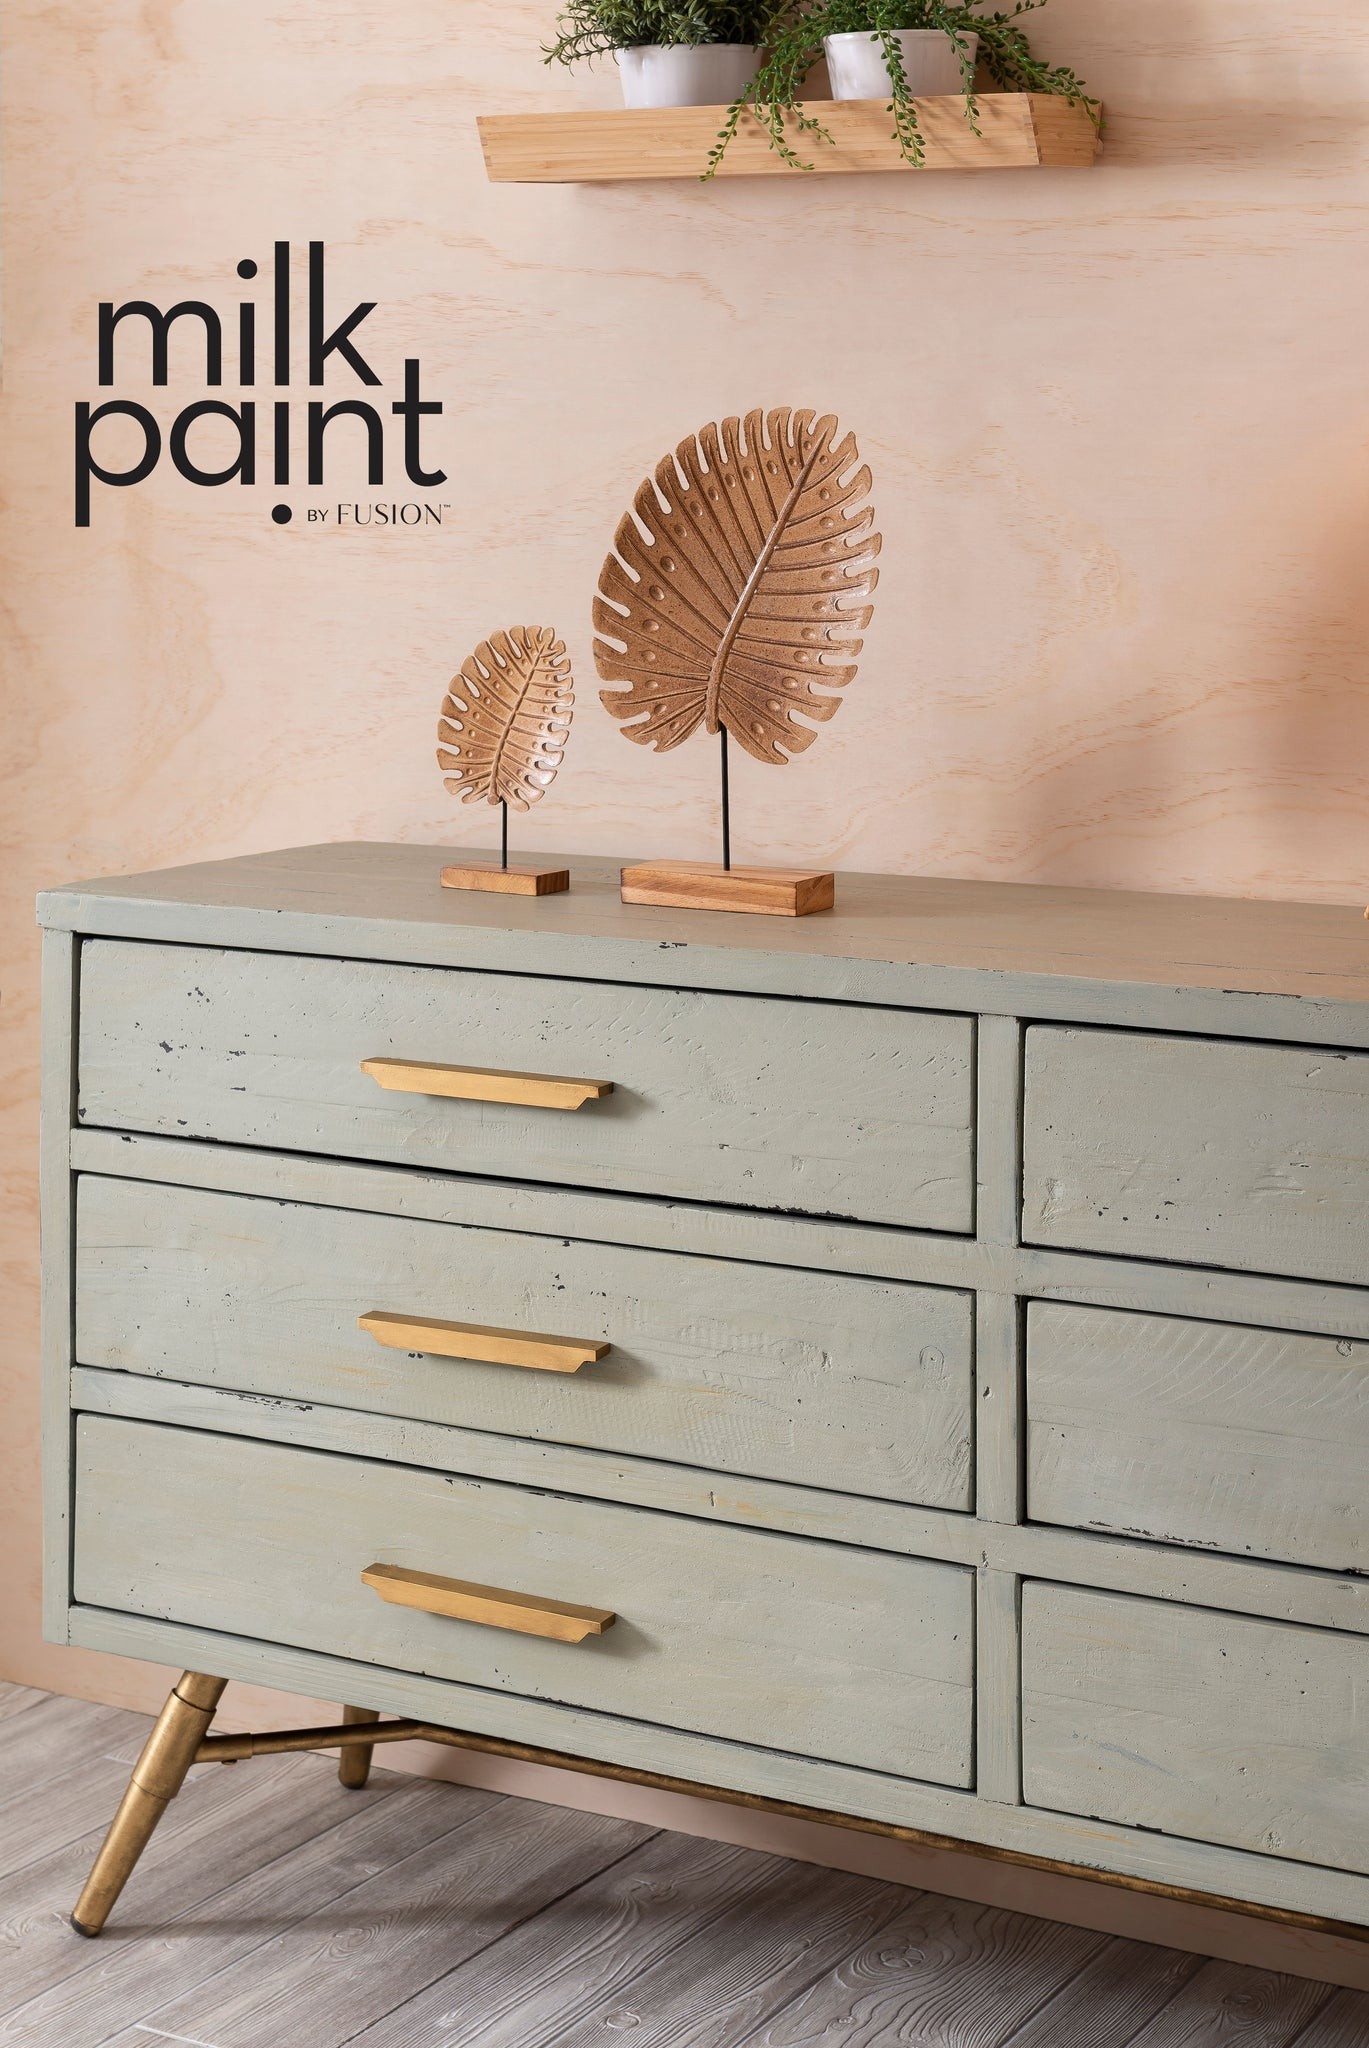 Vintage Laurel Milk Paint by Fusion